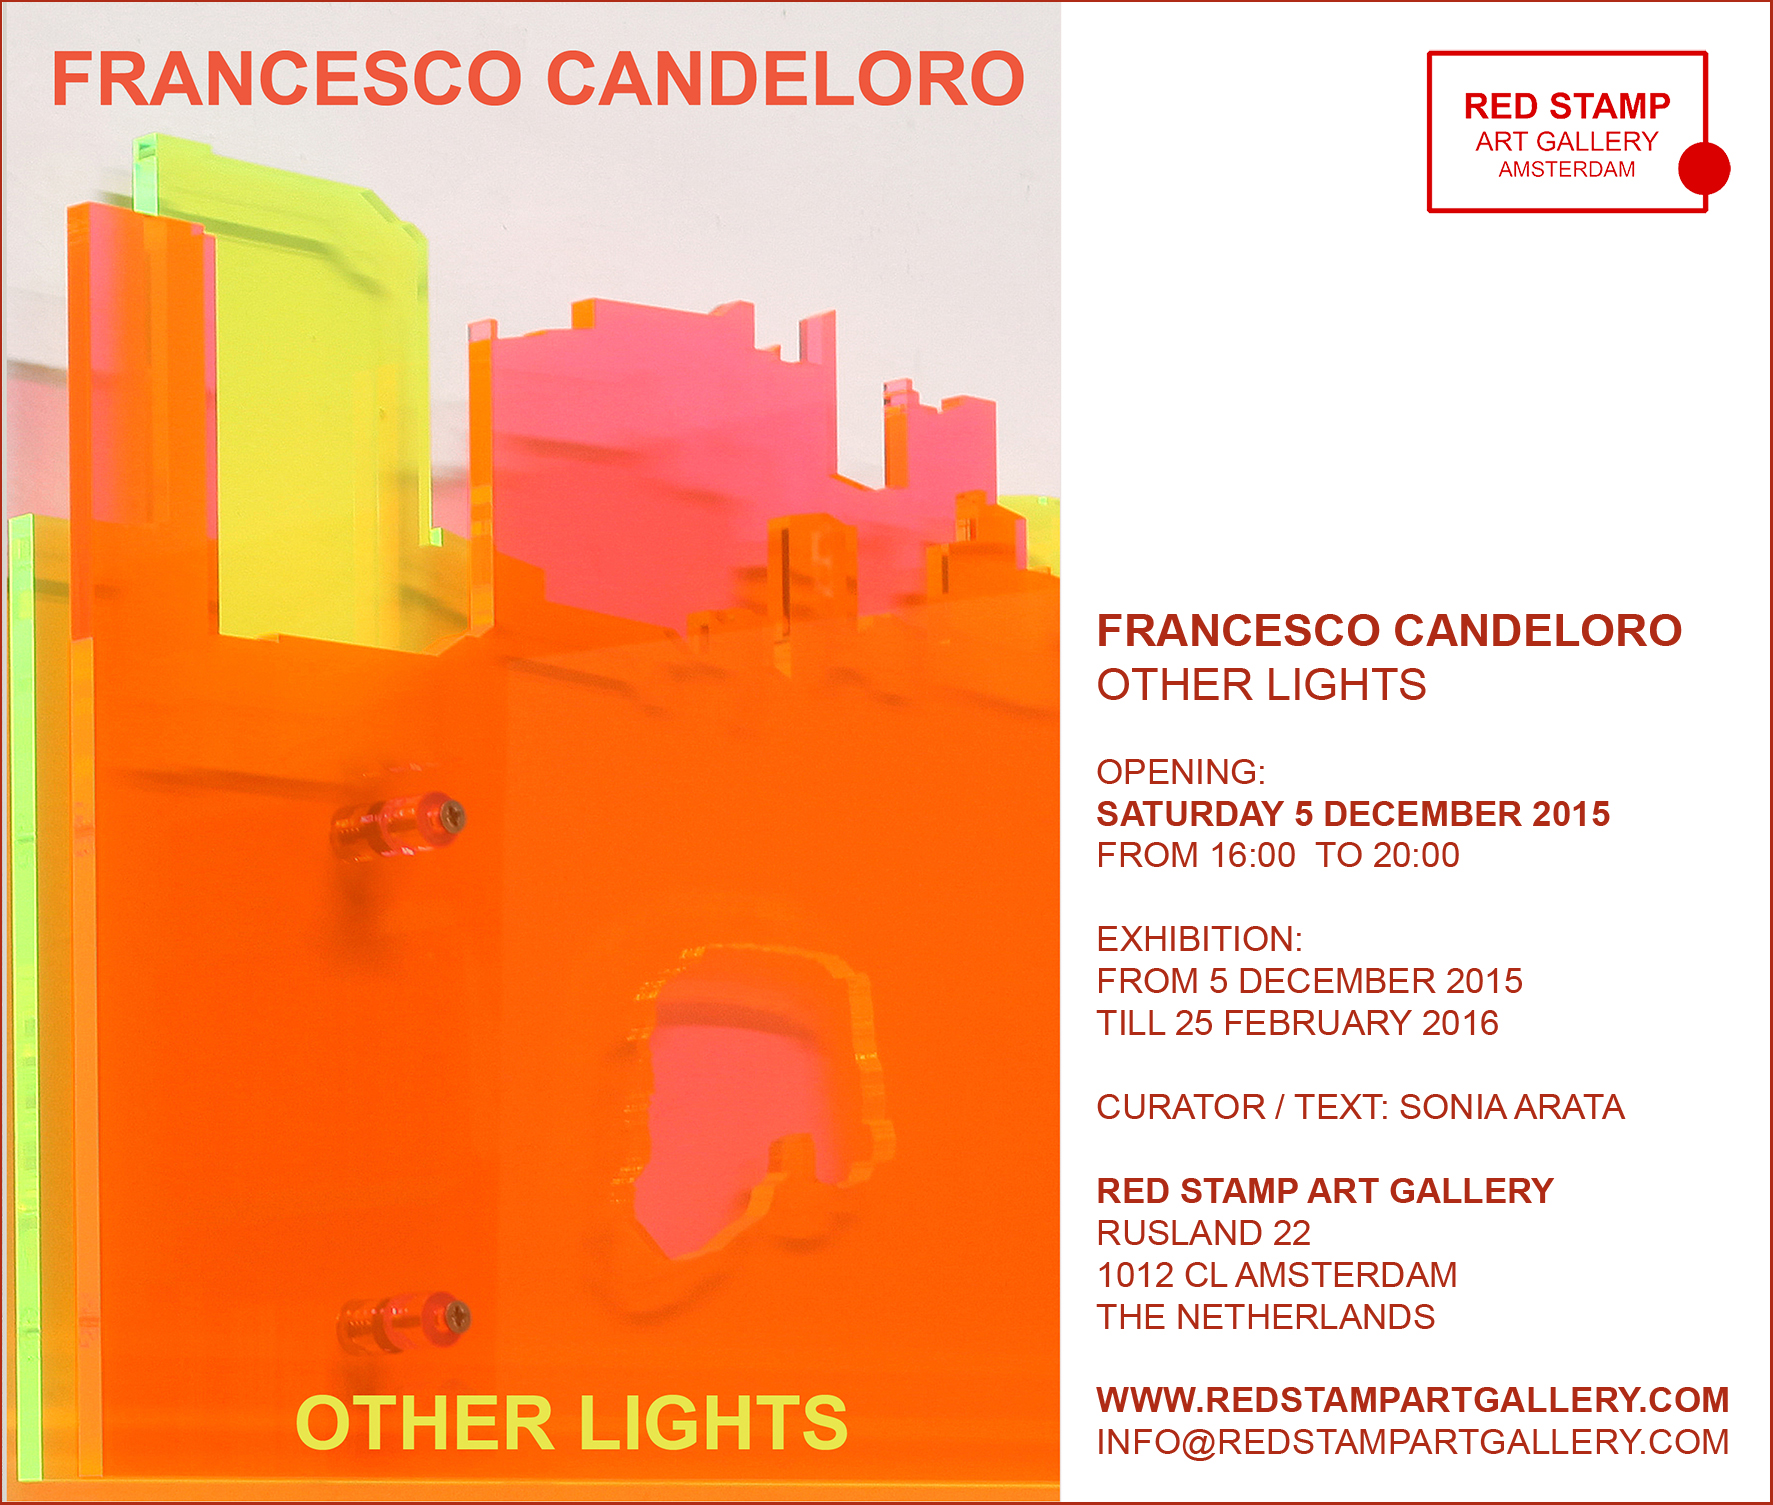 francesco candeloro, other lights, red stamp art gallery, amsterdam